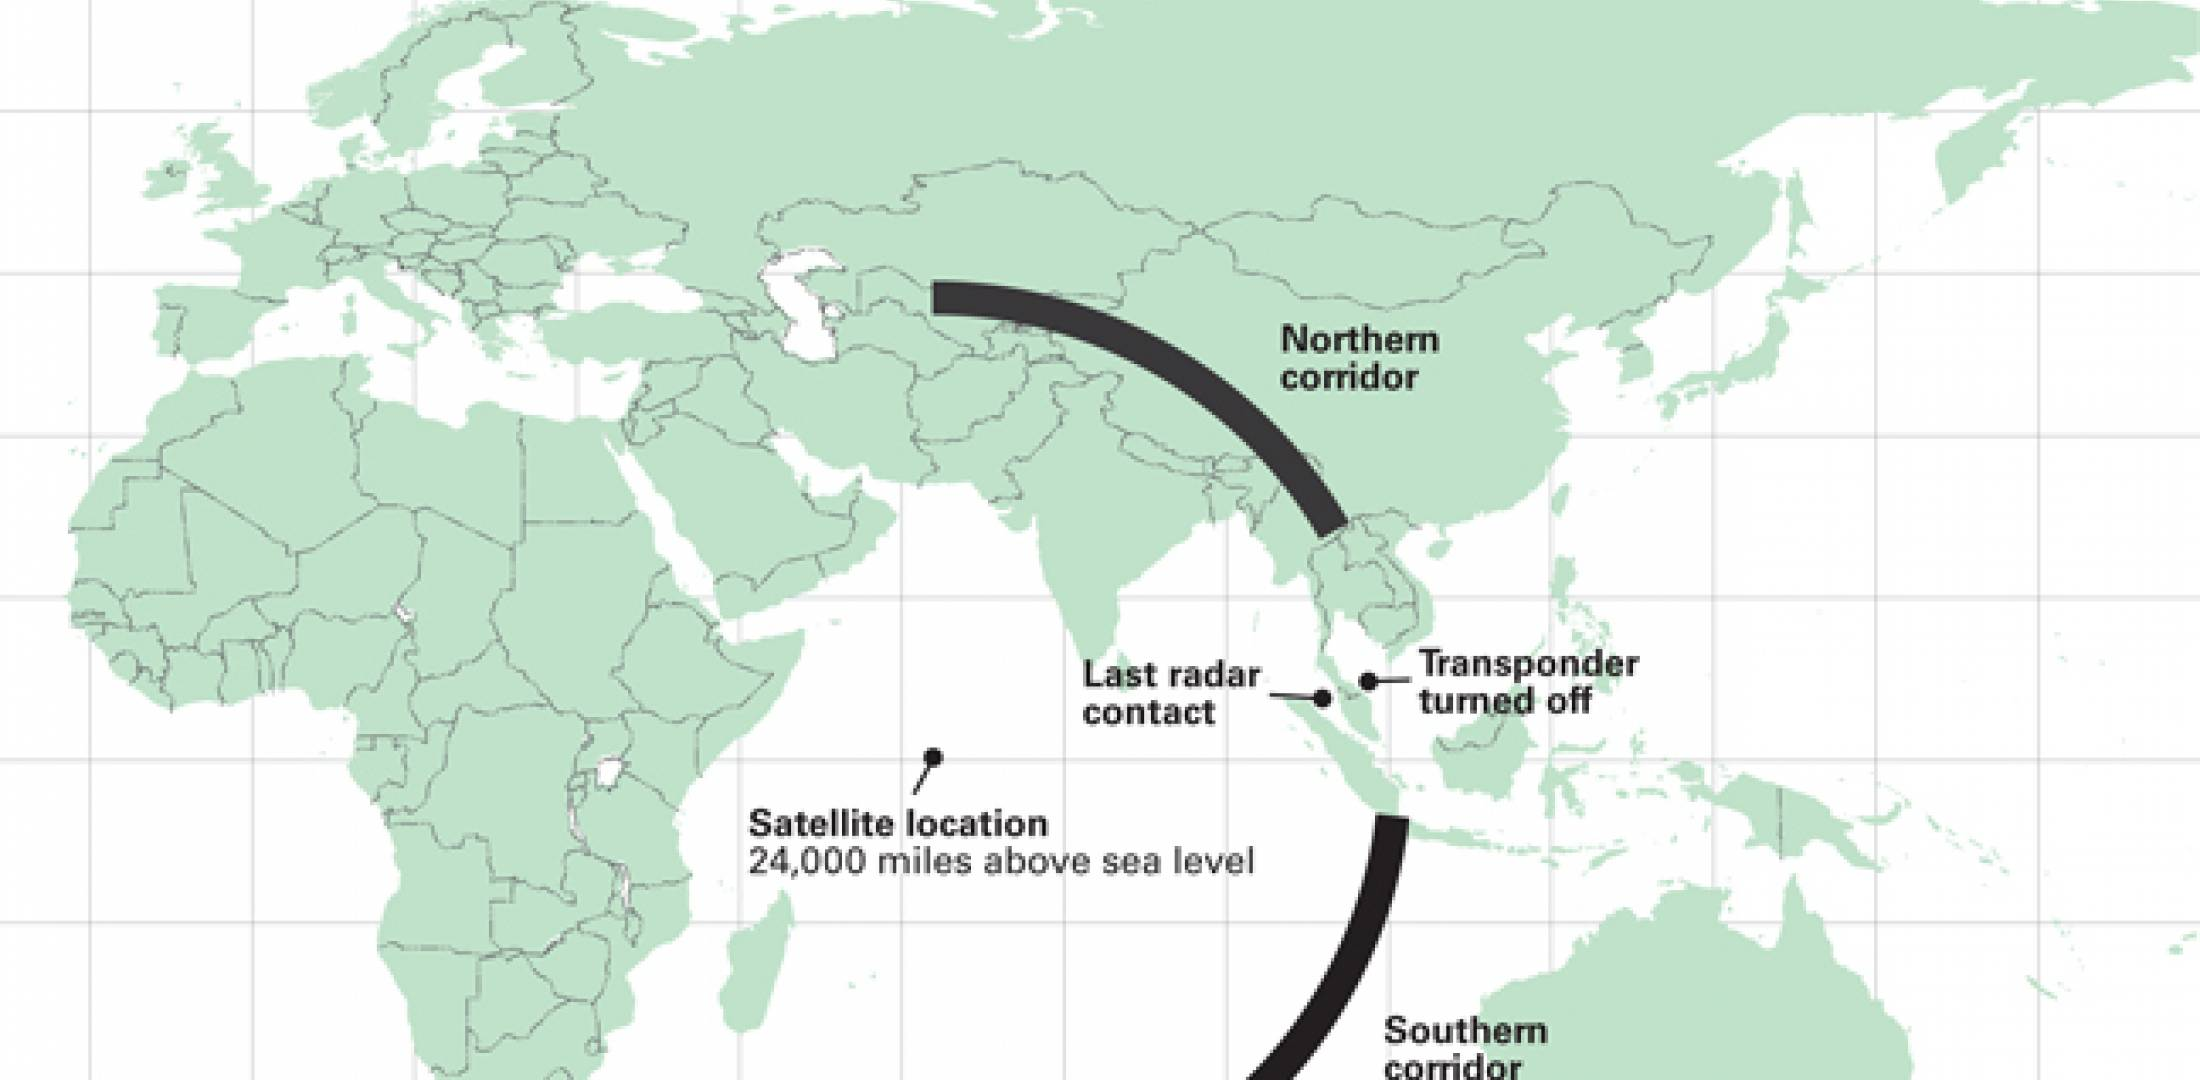 Data from satellite network operator Inmarsat provided the basis for the Malaysian government's determination that Flight 370 crashed into the southern Indian Ocean.